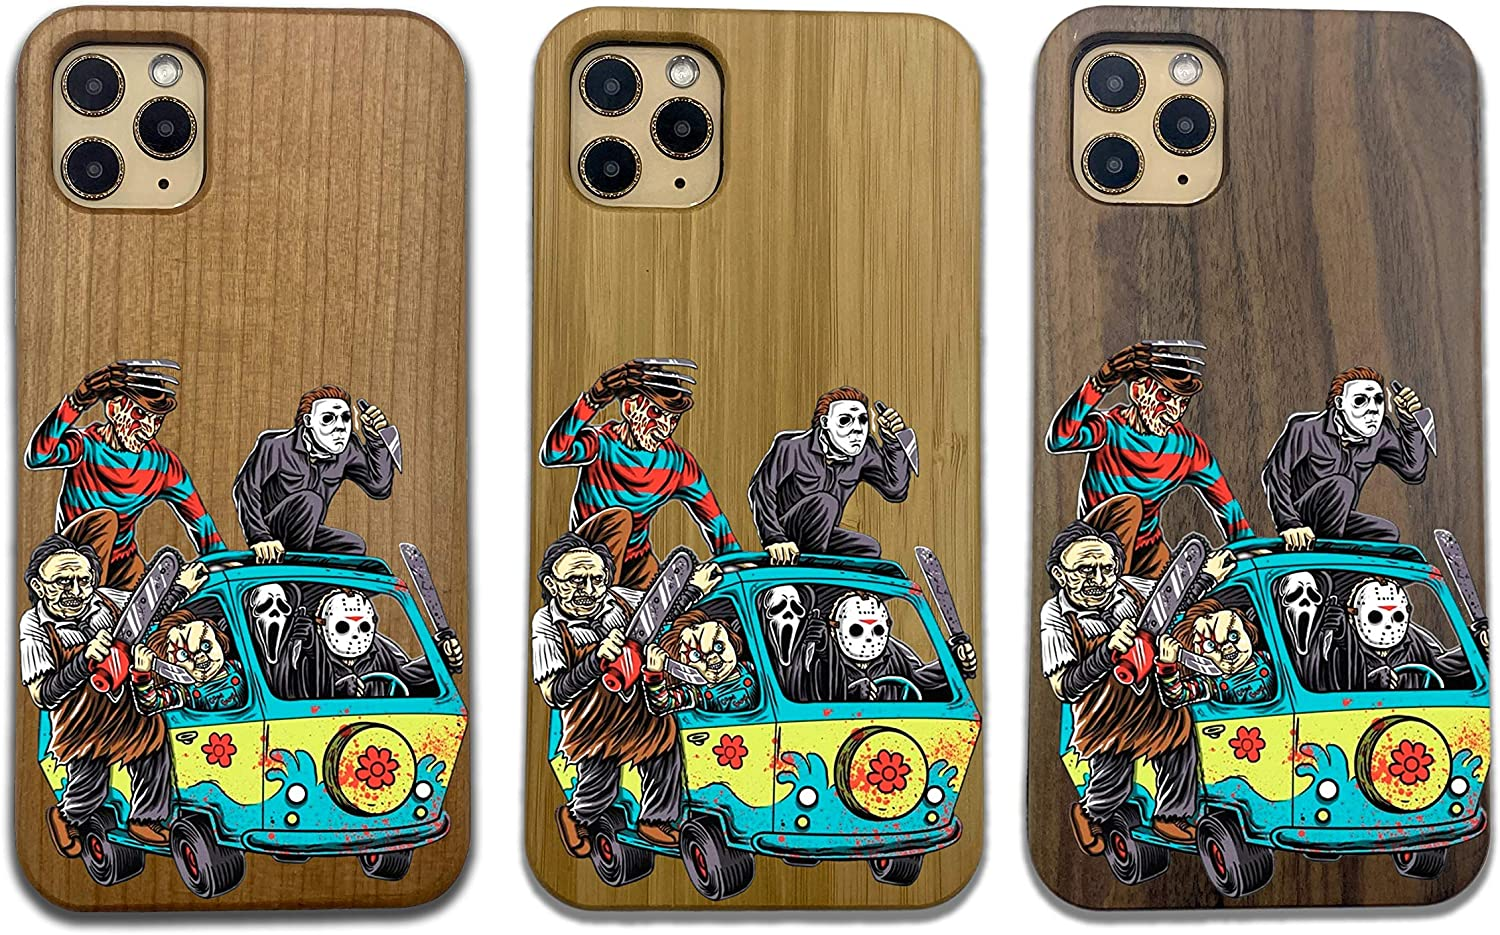 Halloween Wood case Compatible with Apple iPhone 12 pro max Mini 11 XR X 7 8 SE Plus Samsung Galaxy S20 Ultra S10 Note 10 20 Wooden Cover (Bamboo, iPhone 11)